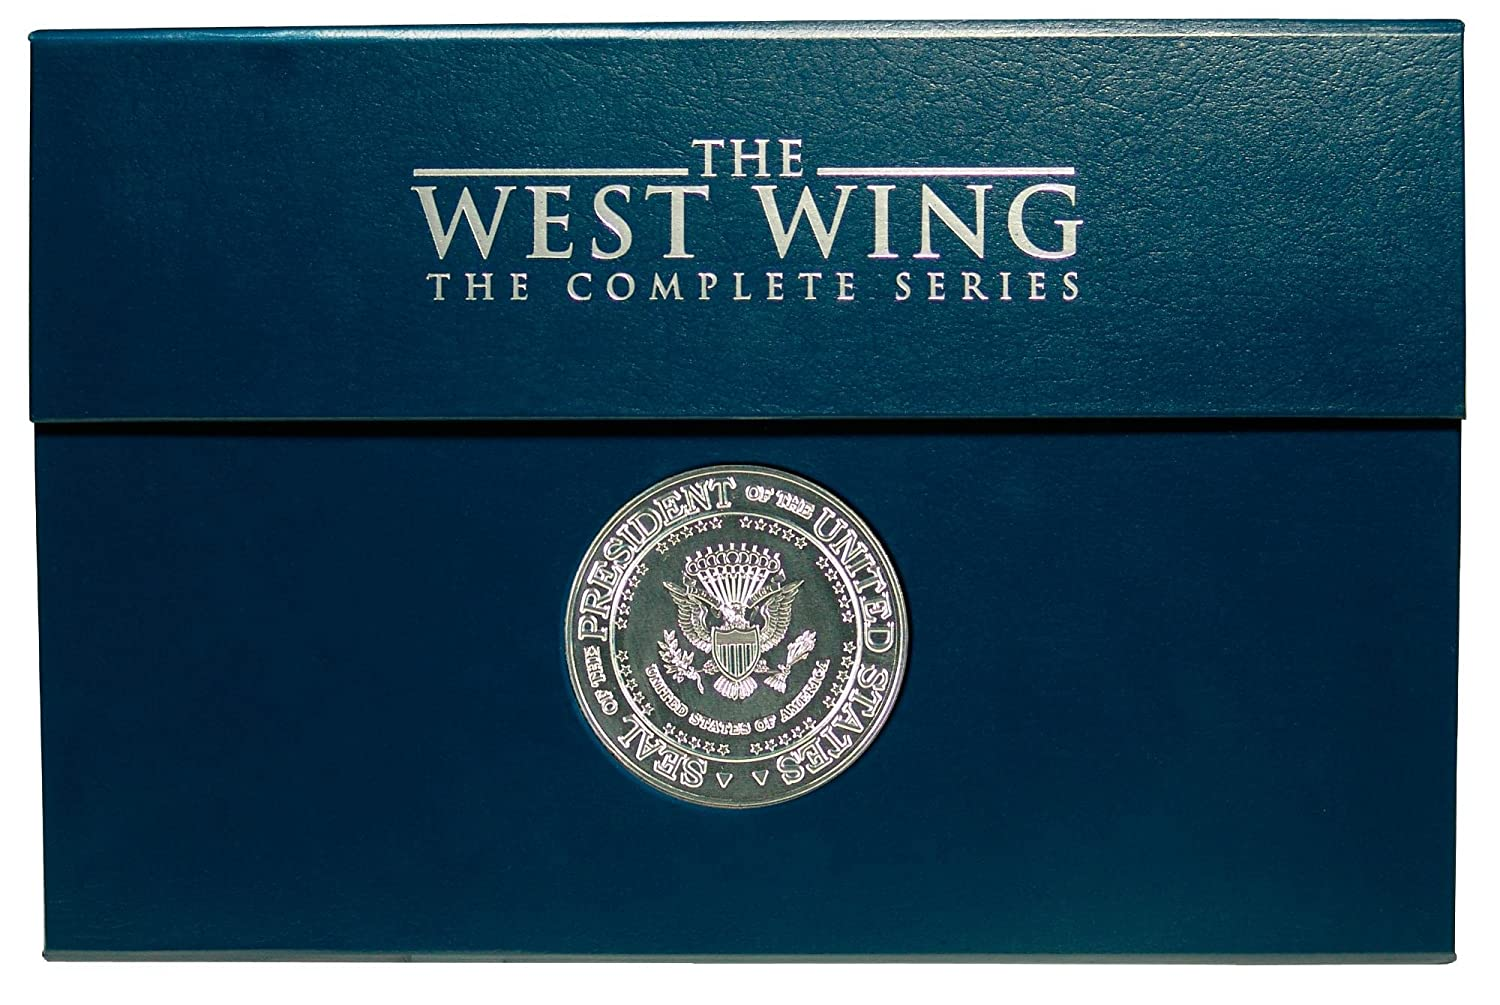 The West Wing: The Complete Series Collection (2006) $79.99